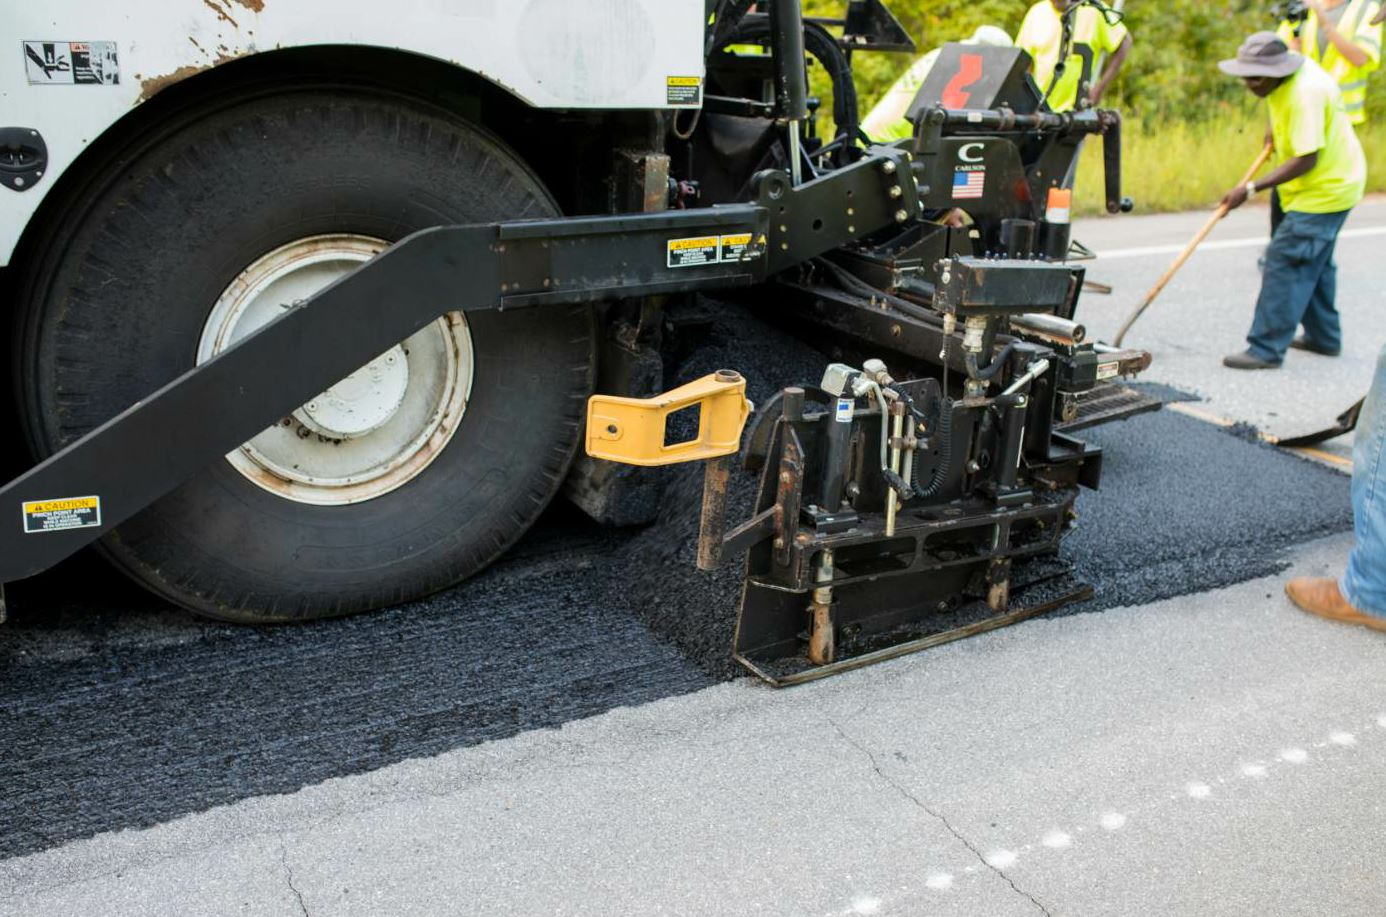 An SB25000 material transfer vehicle fed the mix to a Roadtec paver. Photo courtesy NCAT.